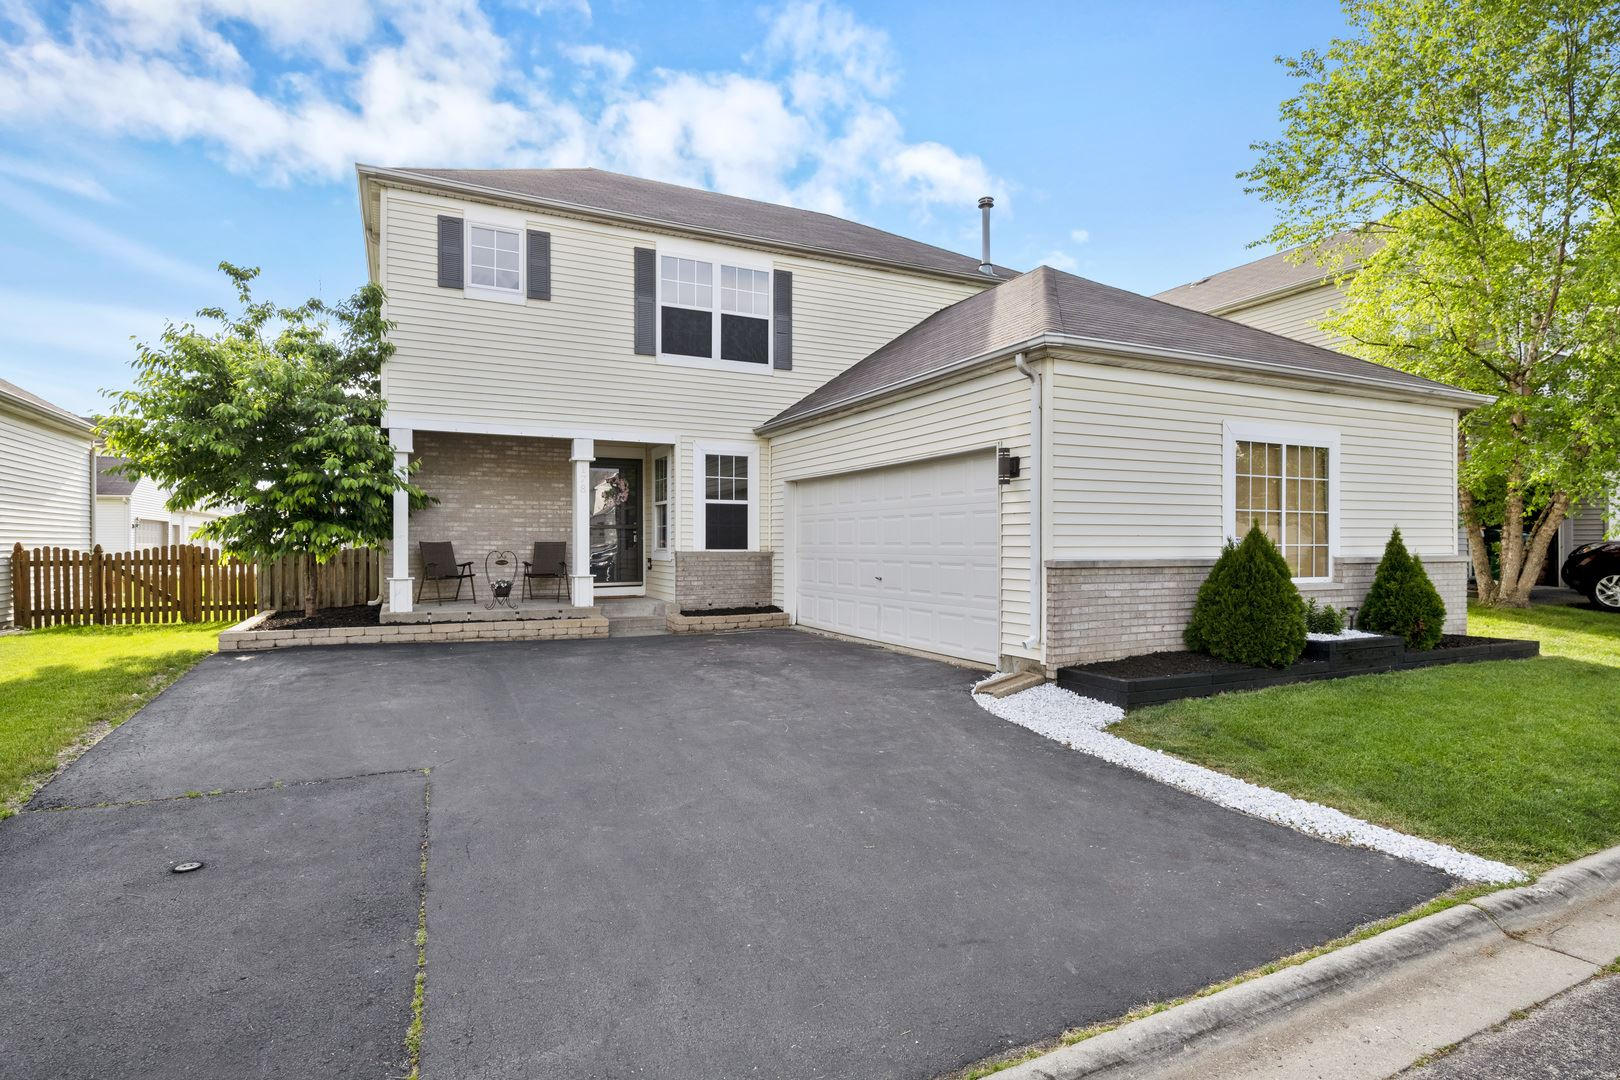 Photo of 178 Coreopsis Court, Romeoville, IL 60446 (MLS # 10736631)